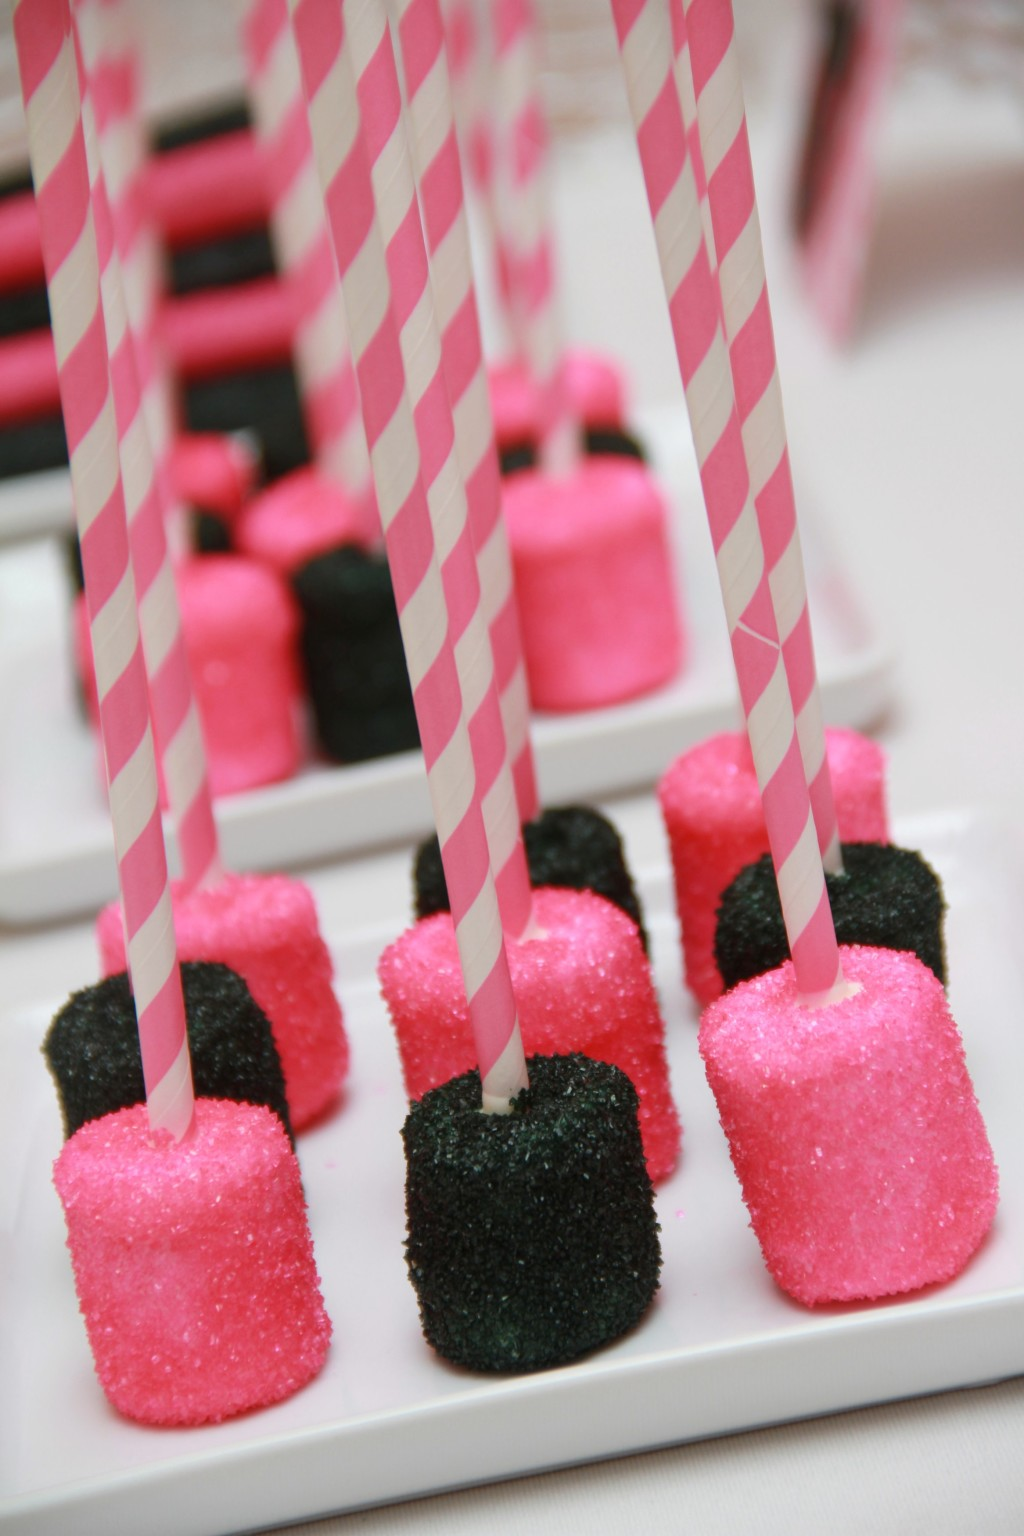 Hot Pink & Black Chocolate Covered Marshmallows